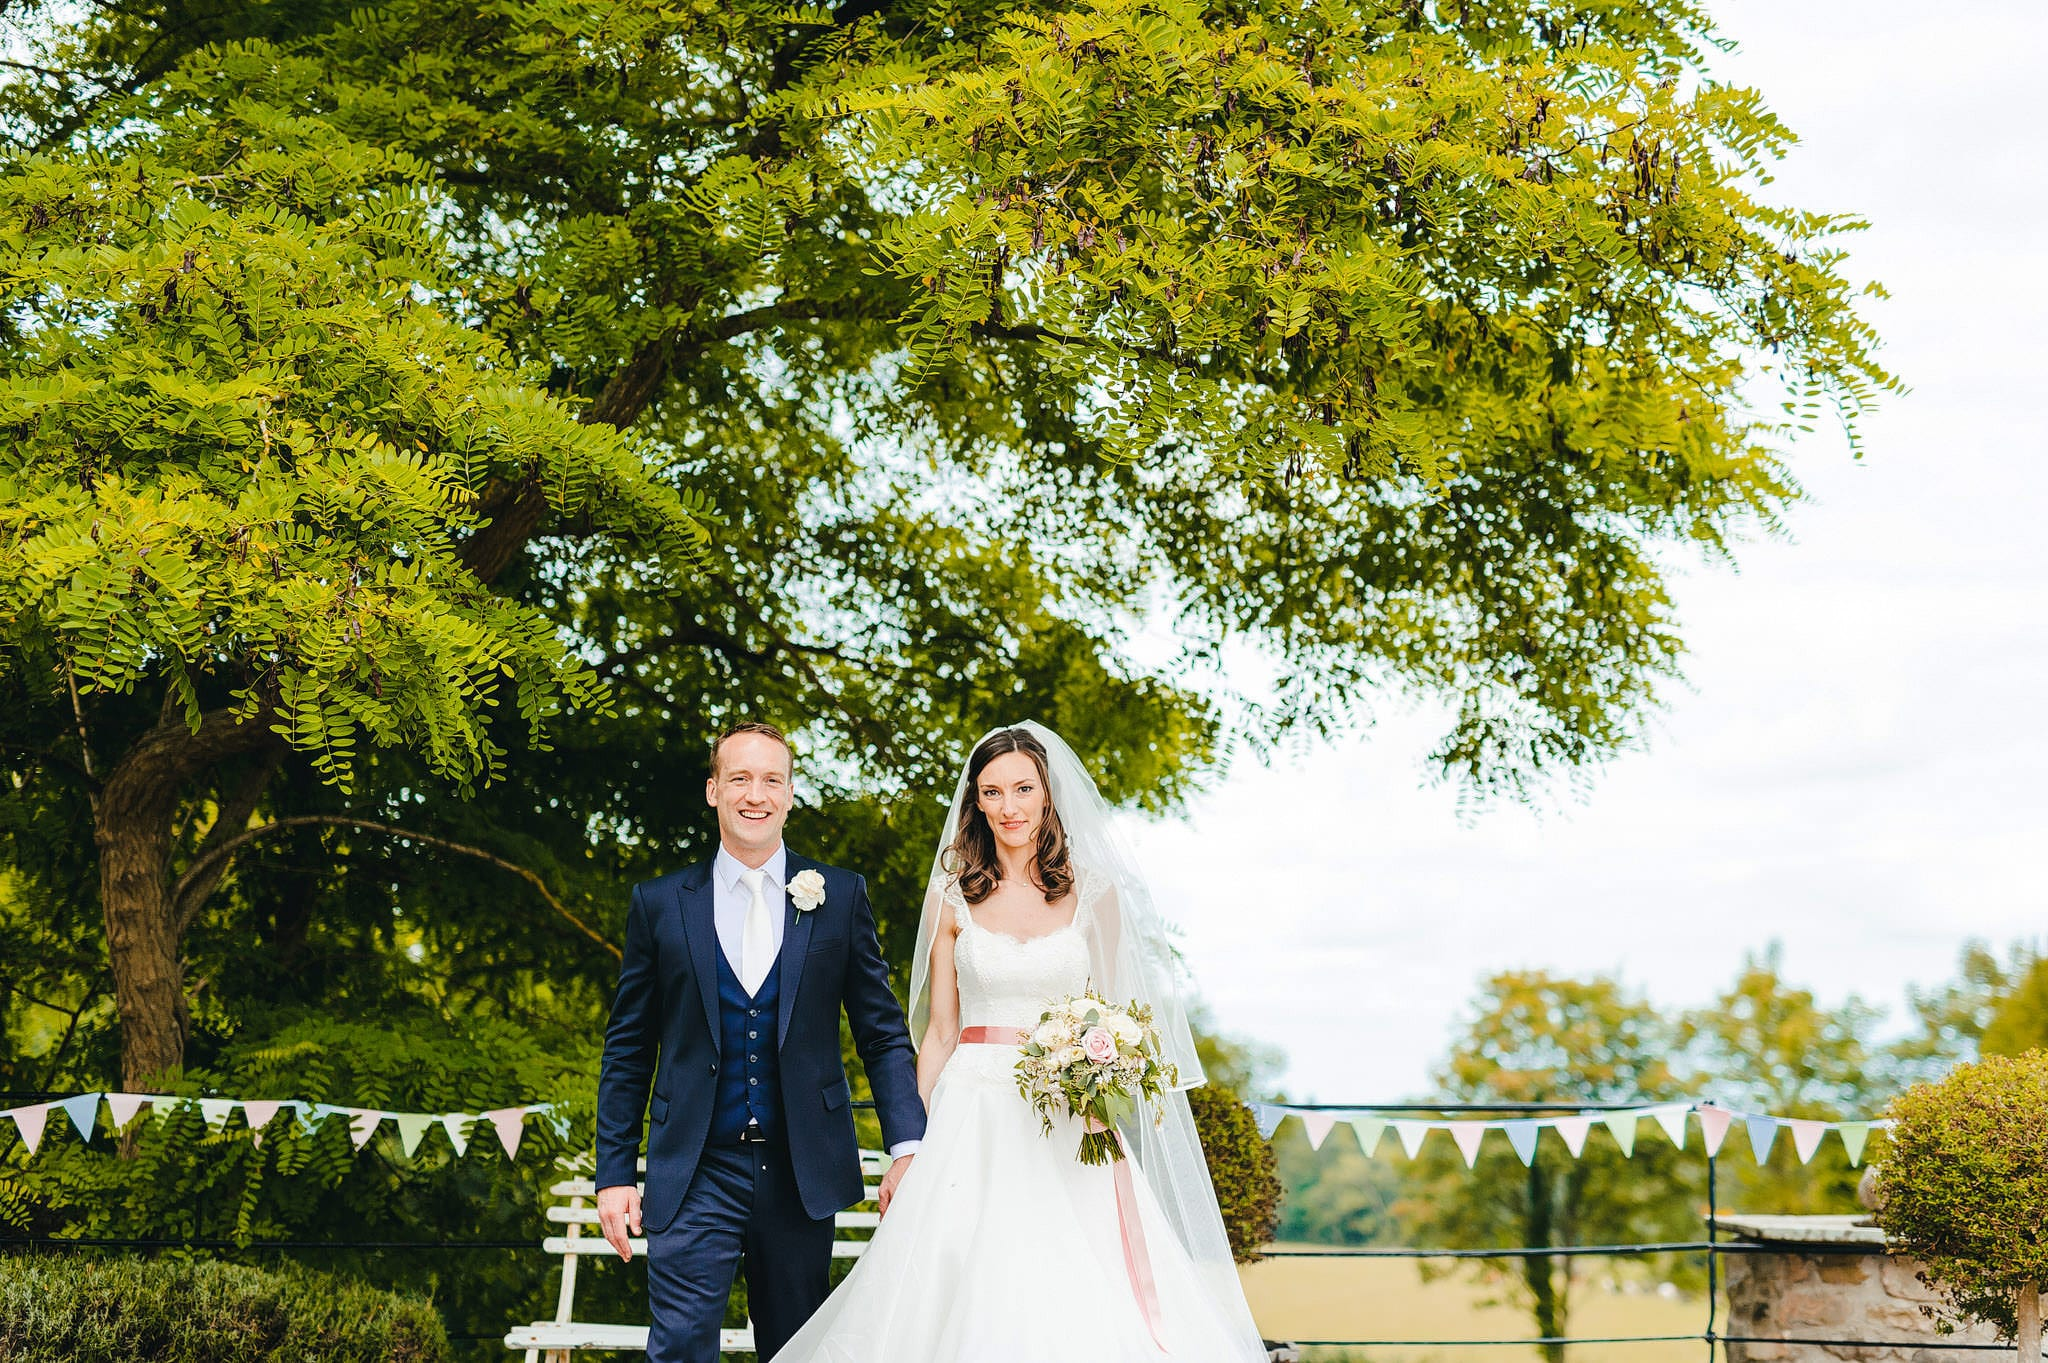 wedding photography midlands 9 - Midlands wedding photography - 2015 Review